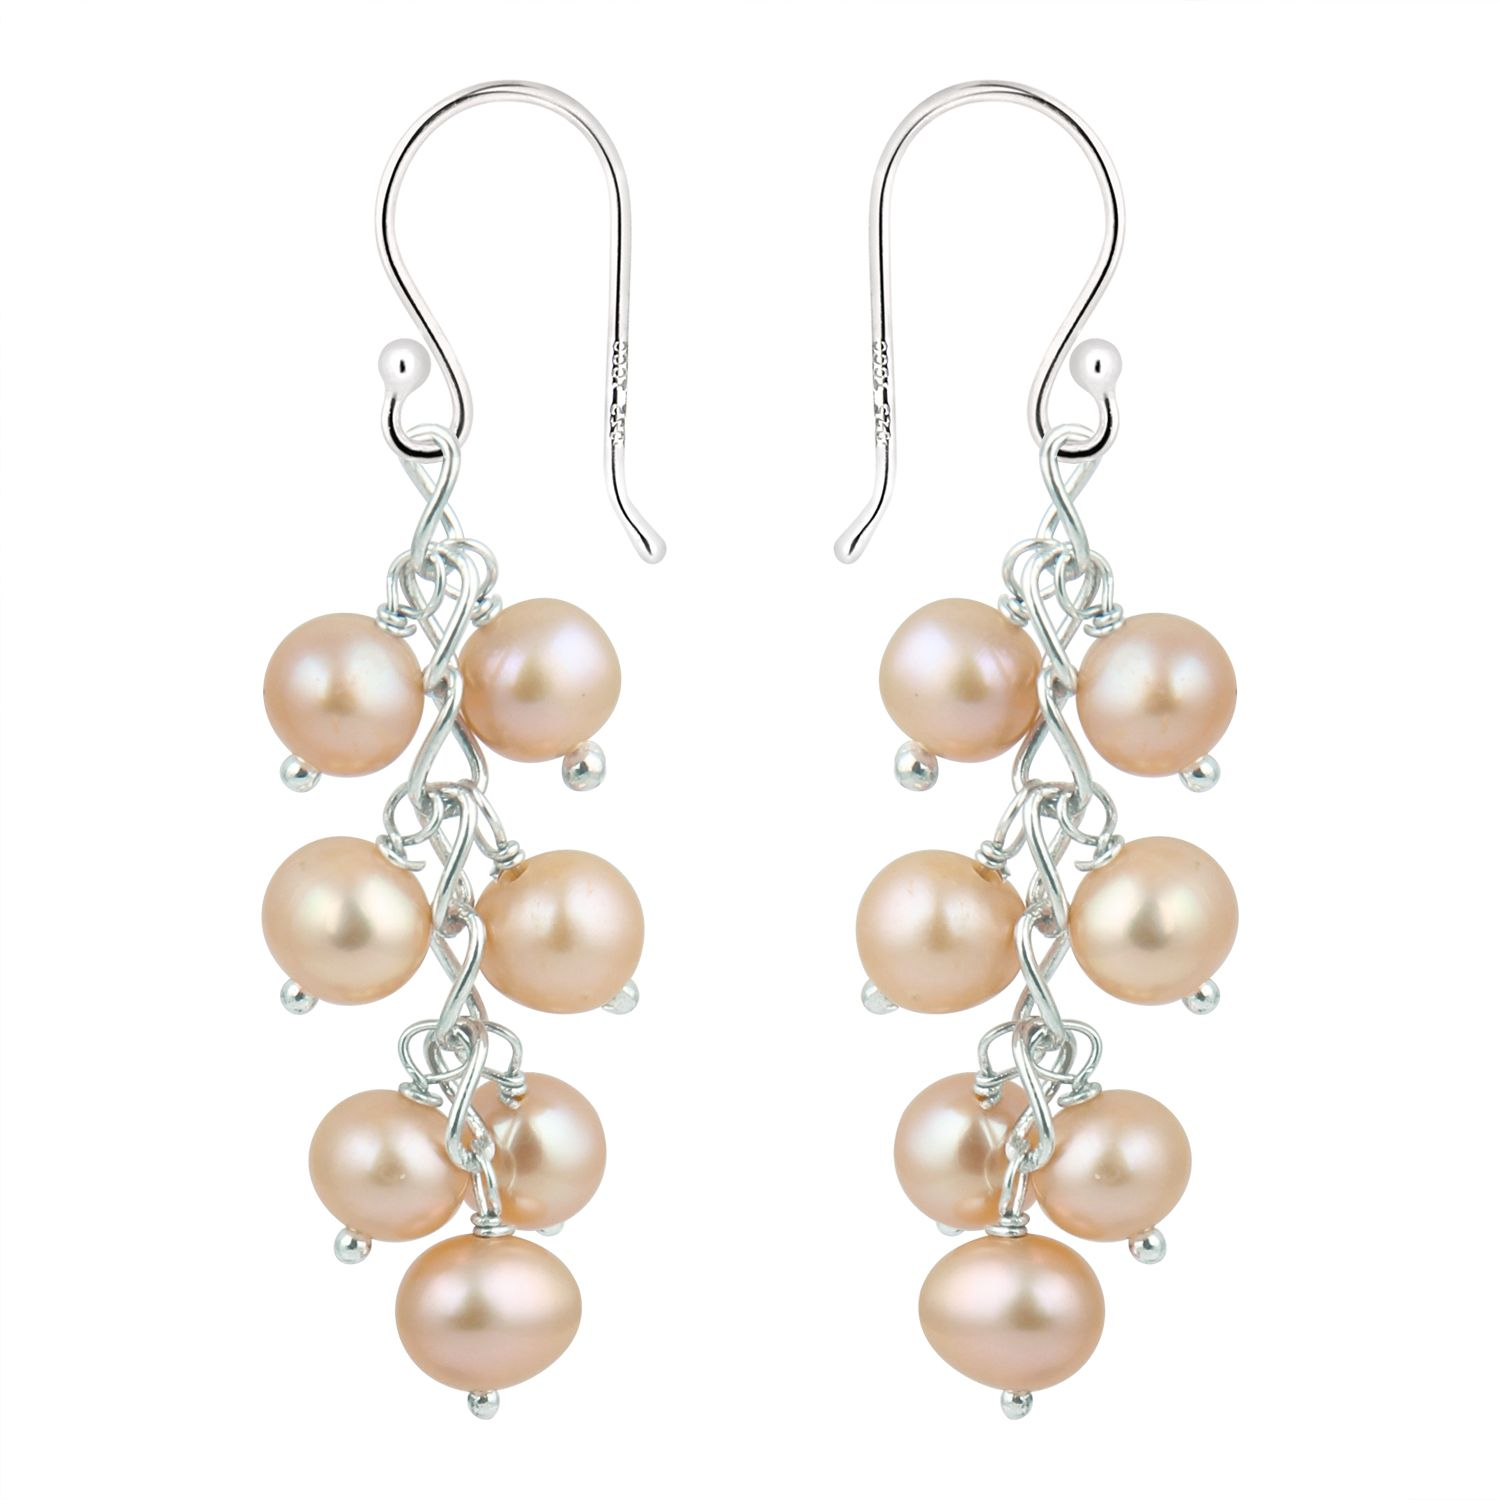 This Beautiful Earrings provides from the Pearlz Gallery. Get  one such amazing piece of Pearlz Gallery 925 Sterling Silver With Fresh Water Pearl Earrings at INR 625.00.Check out our latest designs of Earings.